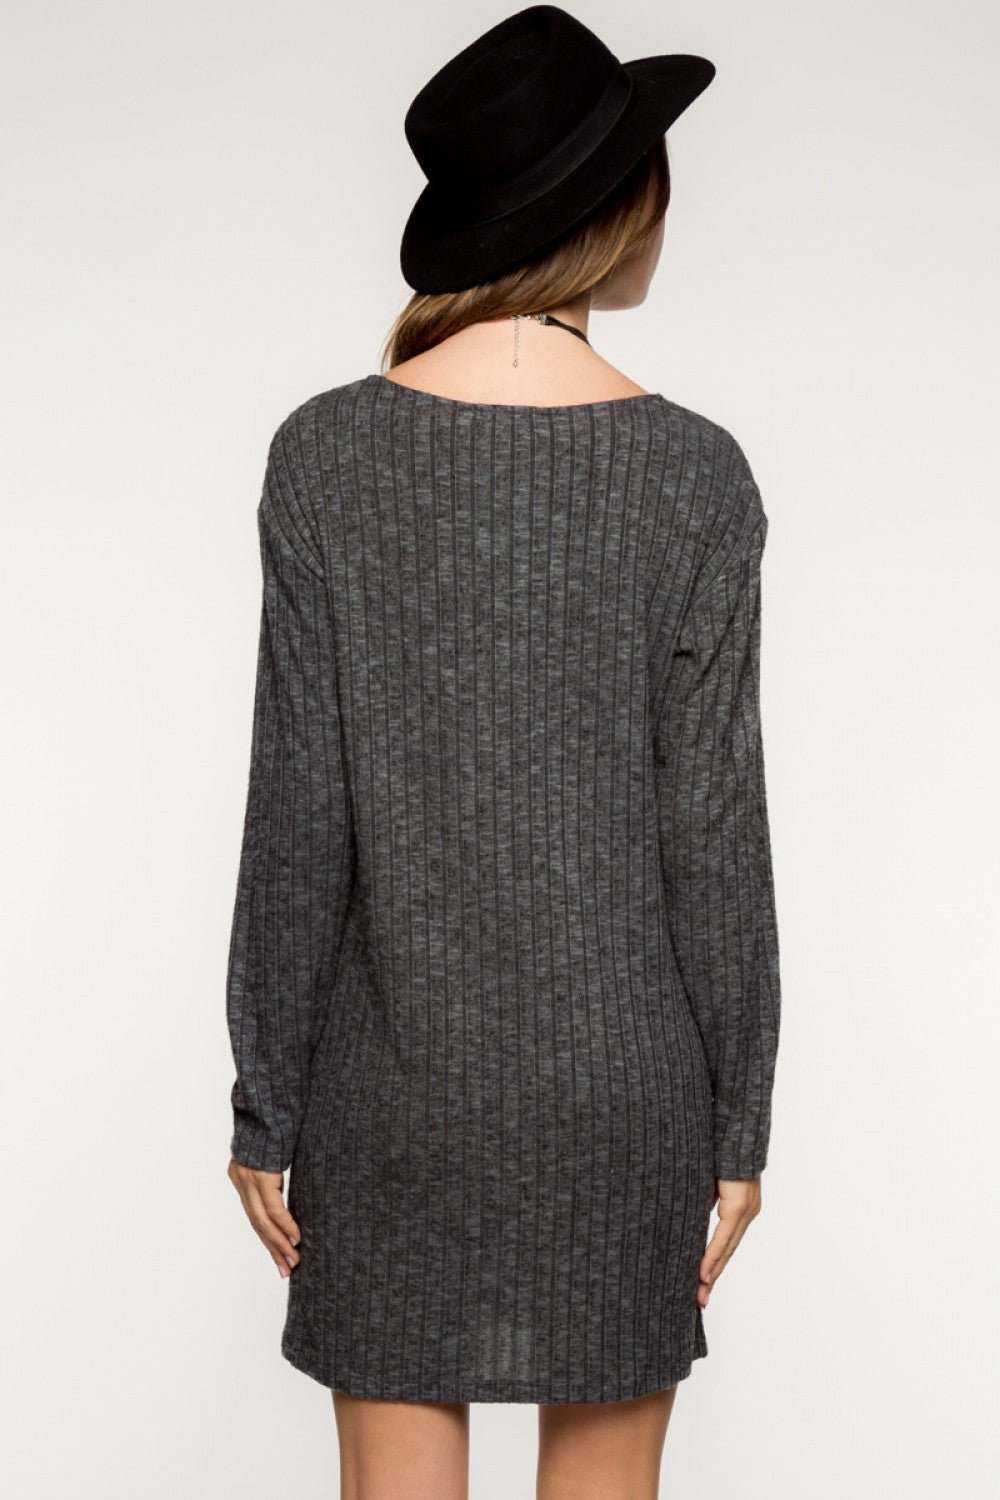 Long Sleeve Wide Ribbed Shift Dress with Pockets - Charcoal